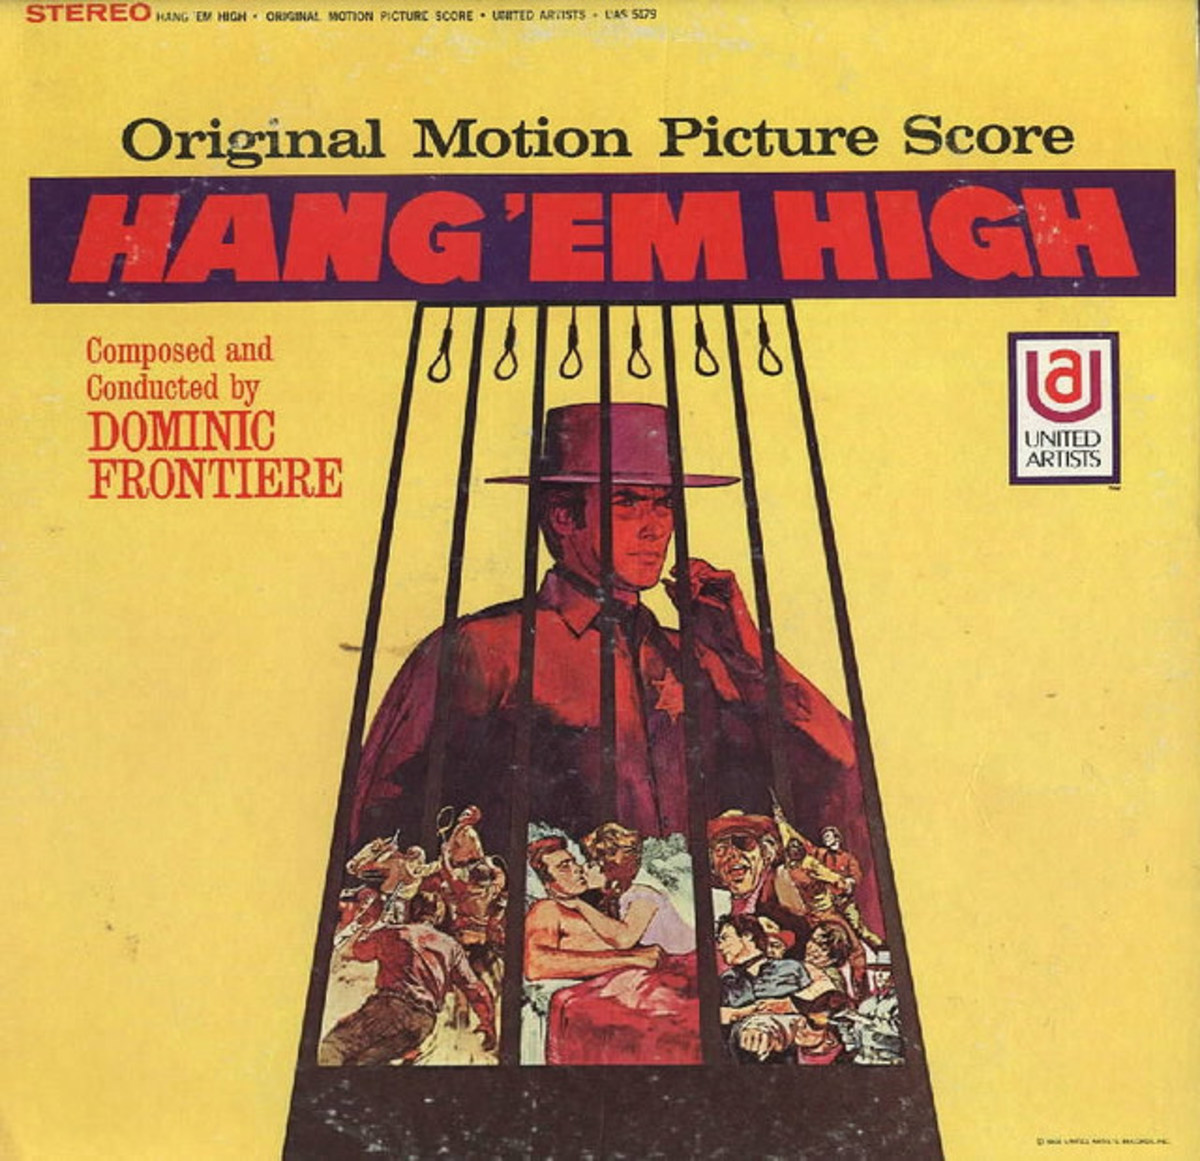 "Clint Eastwood ""Hang 'Em High"" United Artists Records UAS 5179 12"" Vinyl Record US Pressing (1968) Clint Eastwood"